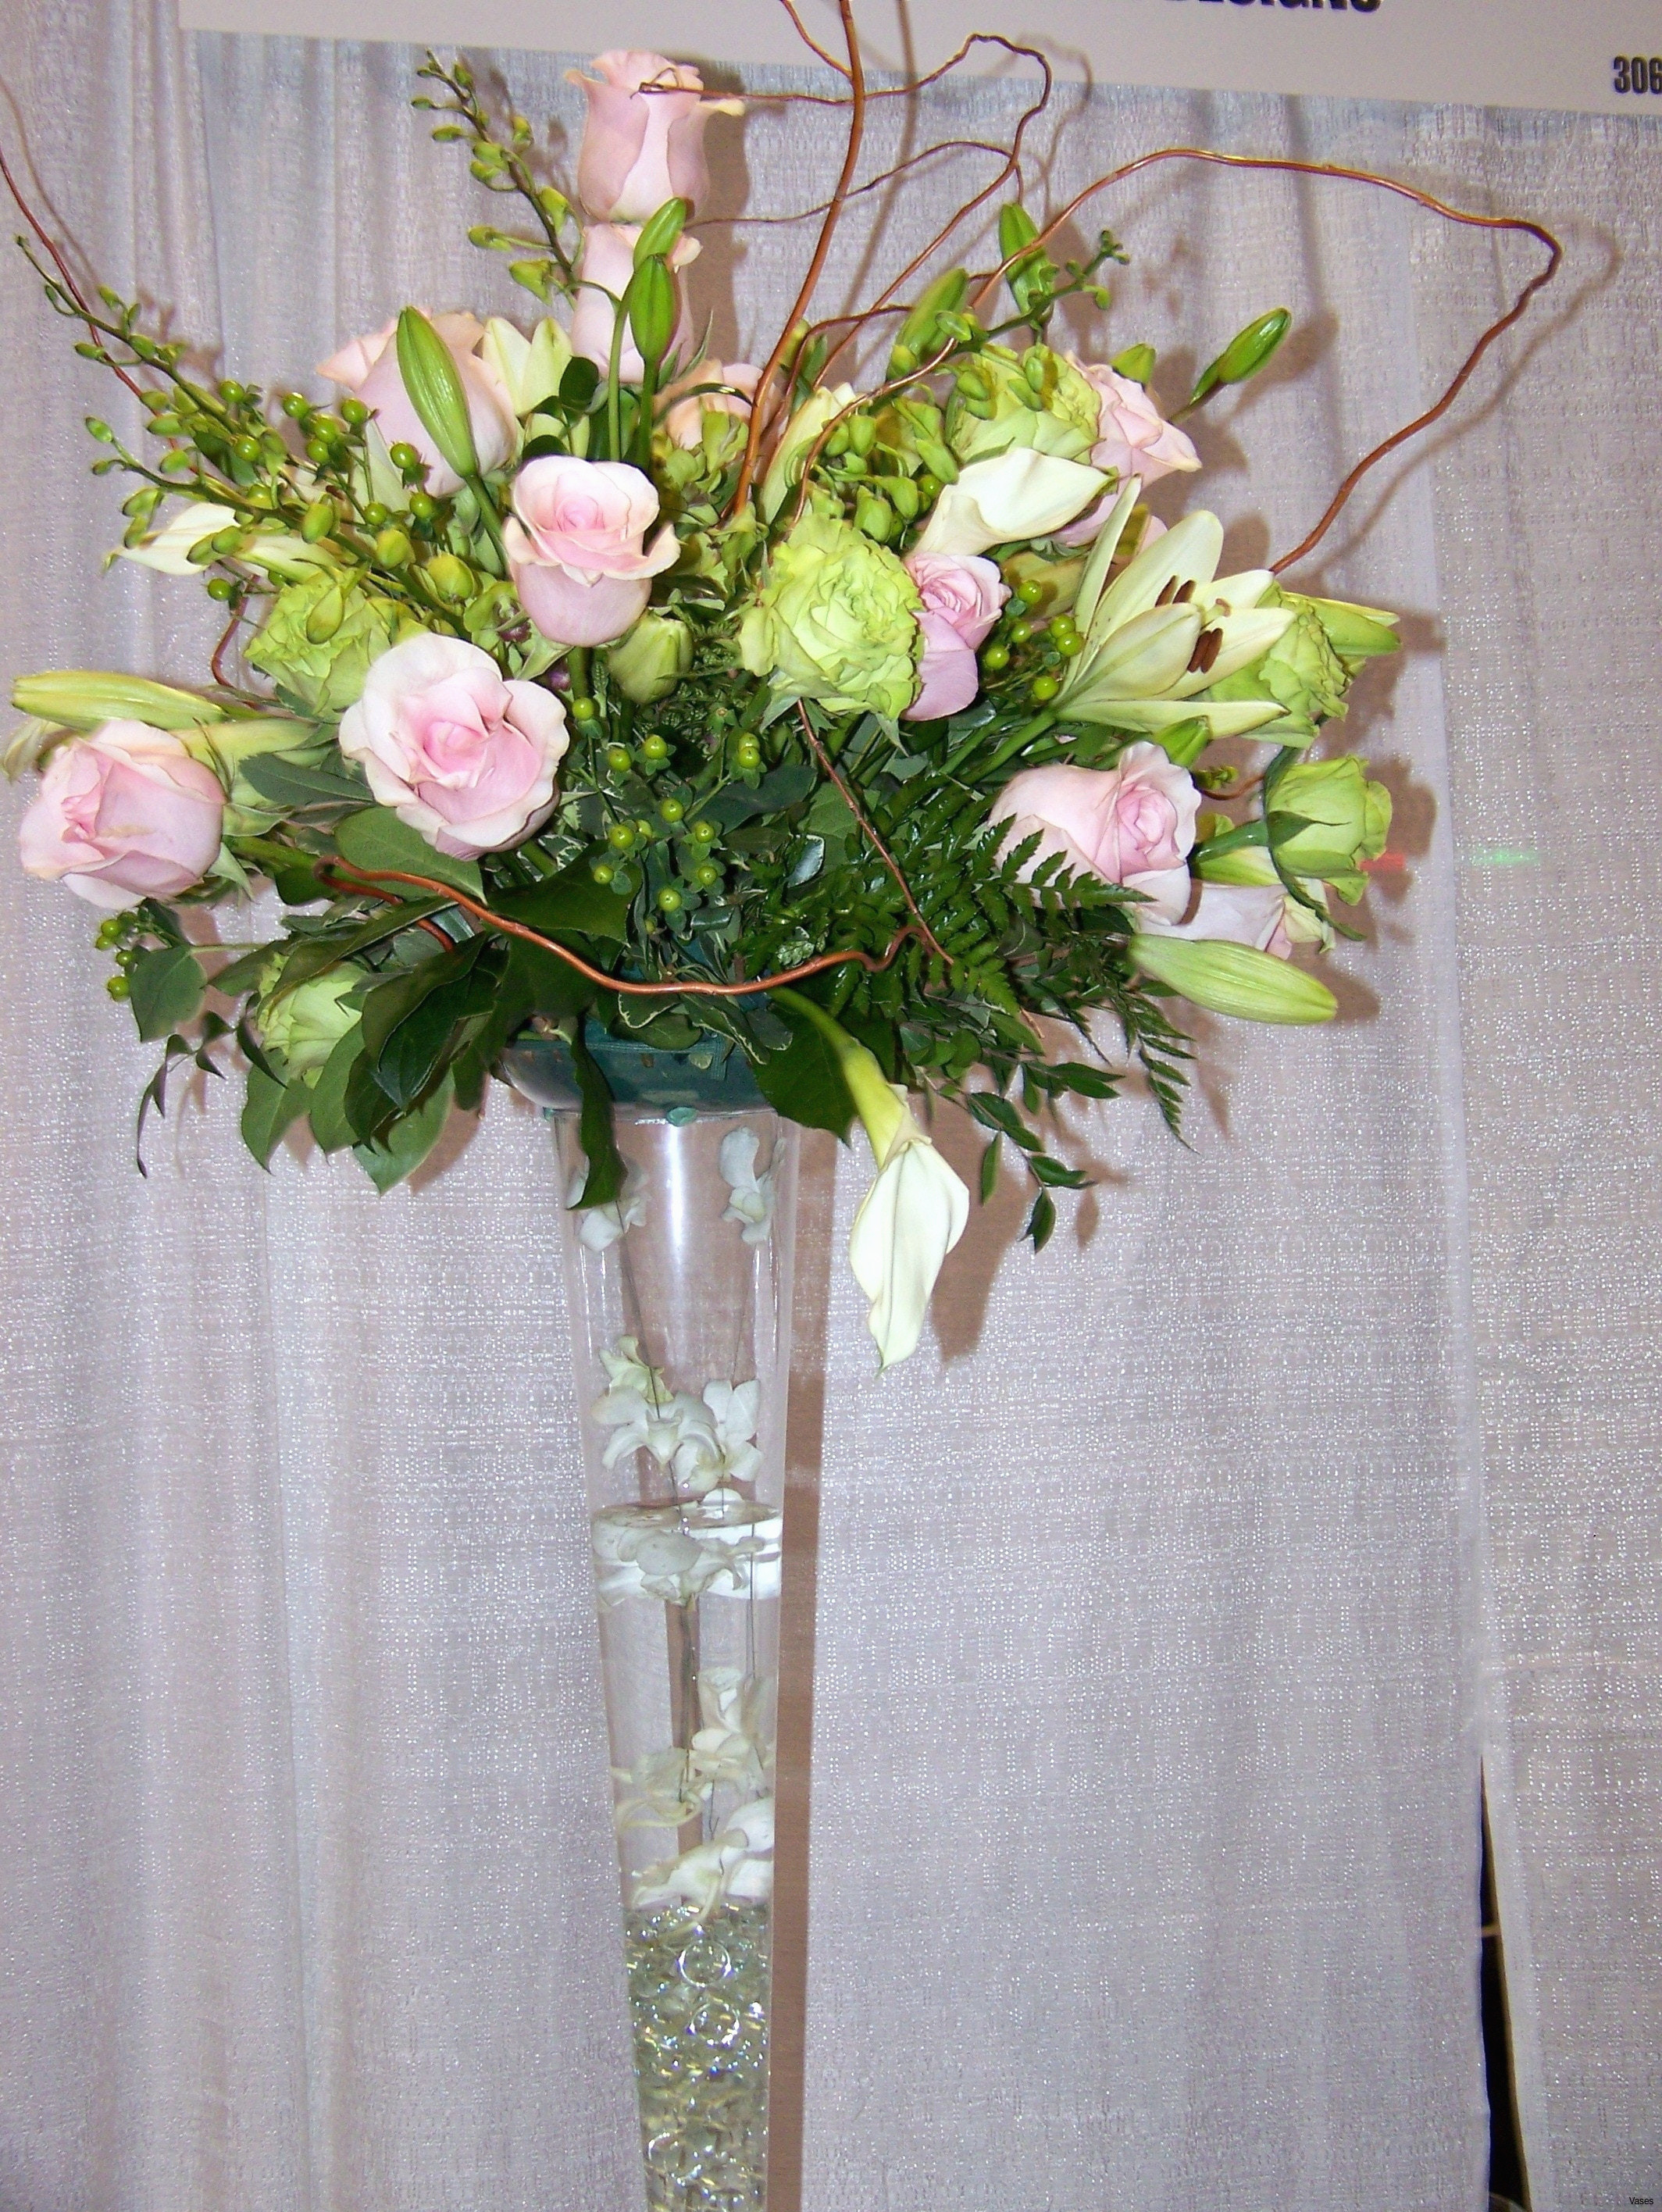 pedestal flower vase of luxury wedding flower bouquet wedding flower bouquets h vases ideas in luxury wedding flower bouquet wedding flower bouquets h vases ideas for of luxury wedding flower bouquet